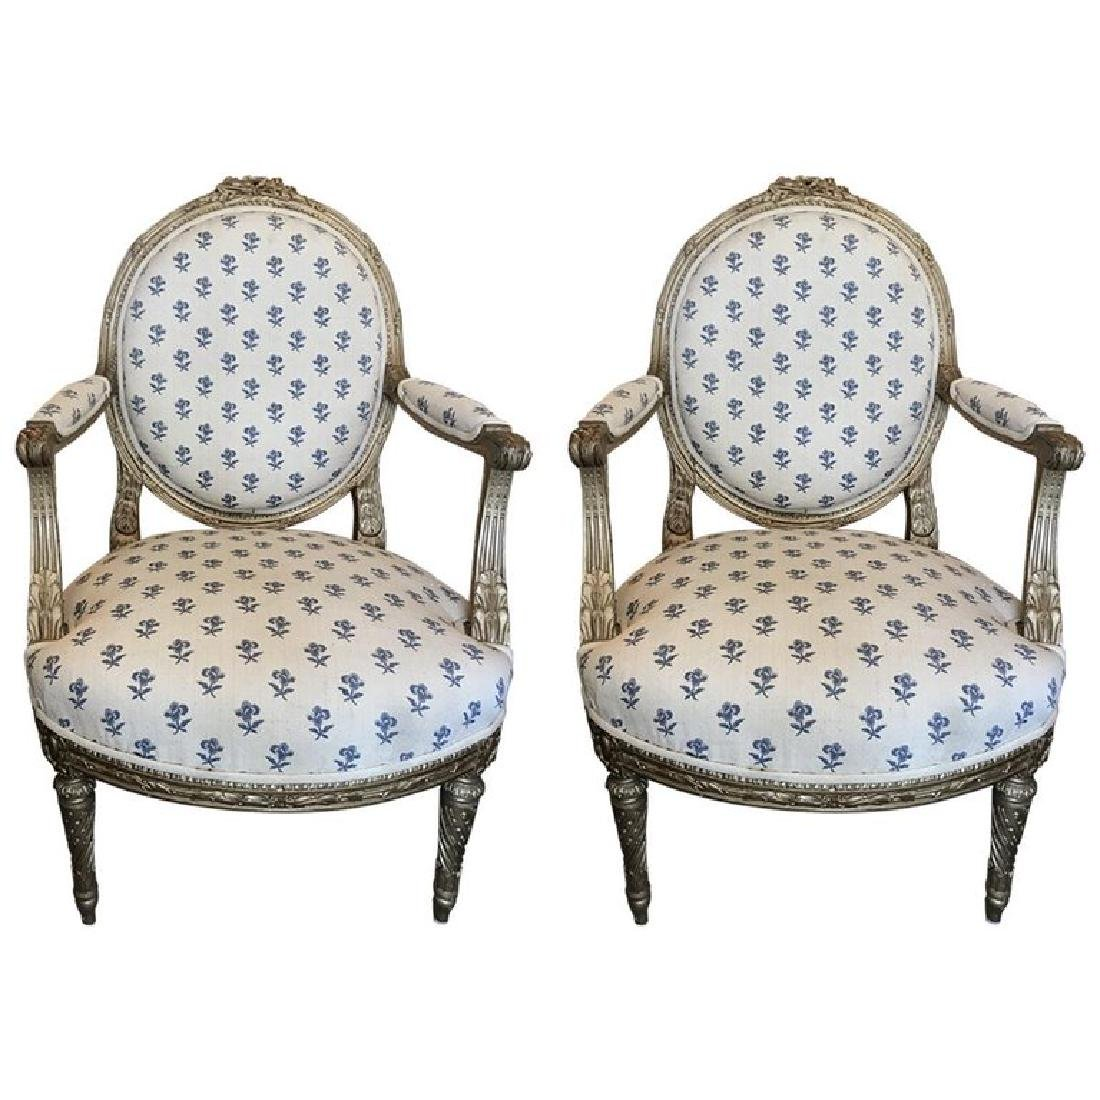 Pair of 19th Century French Louis XVI Style Giltwood